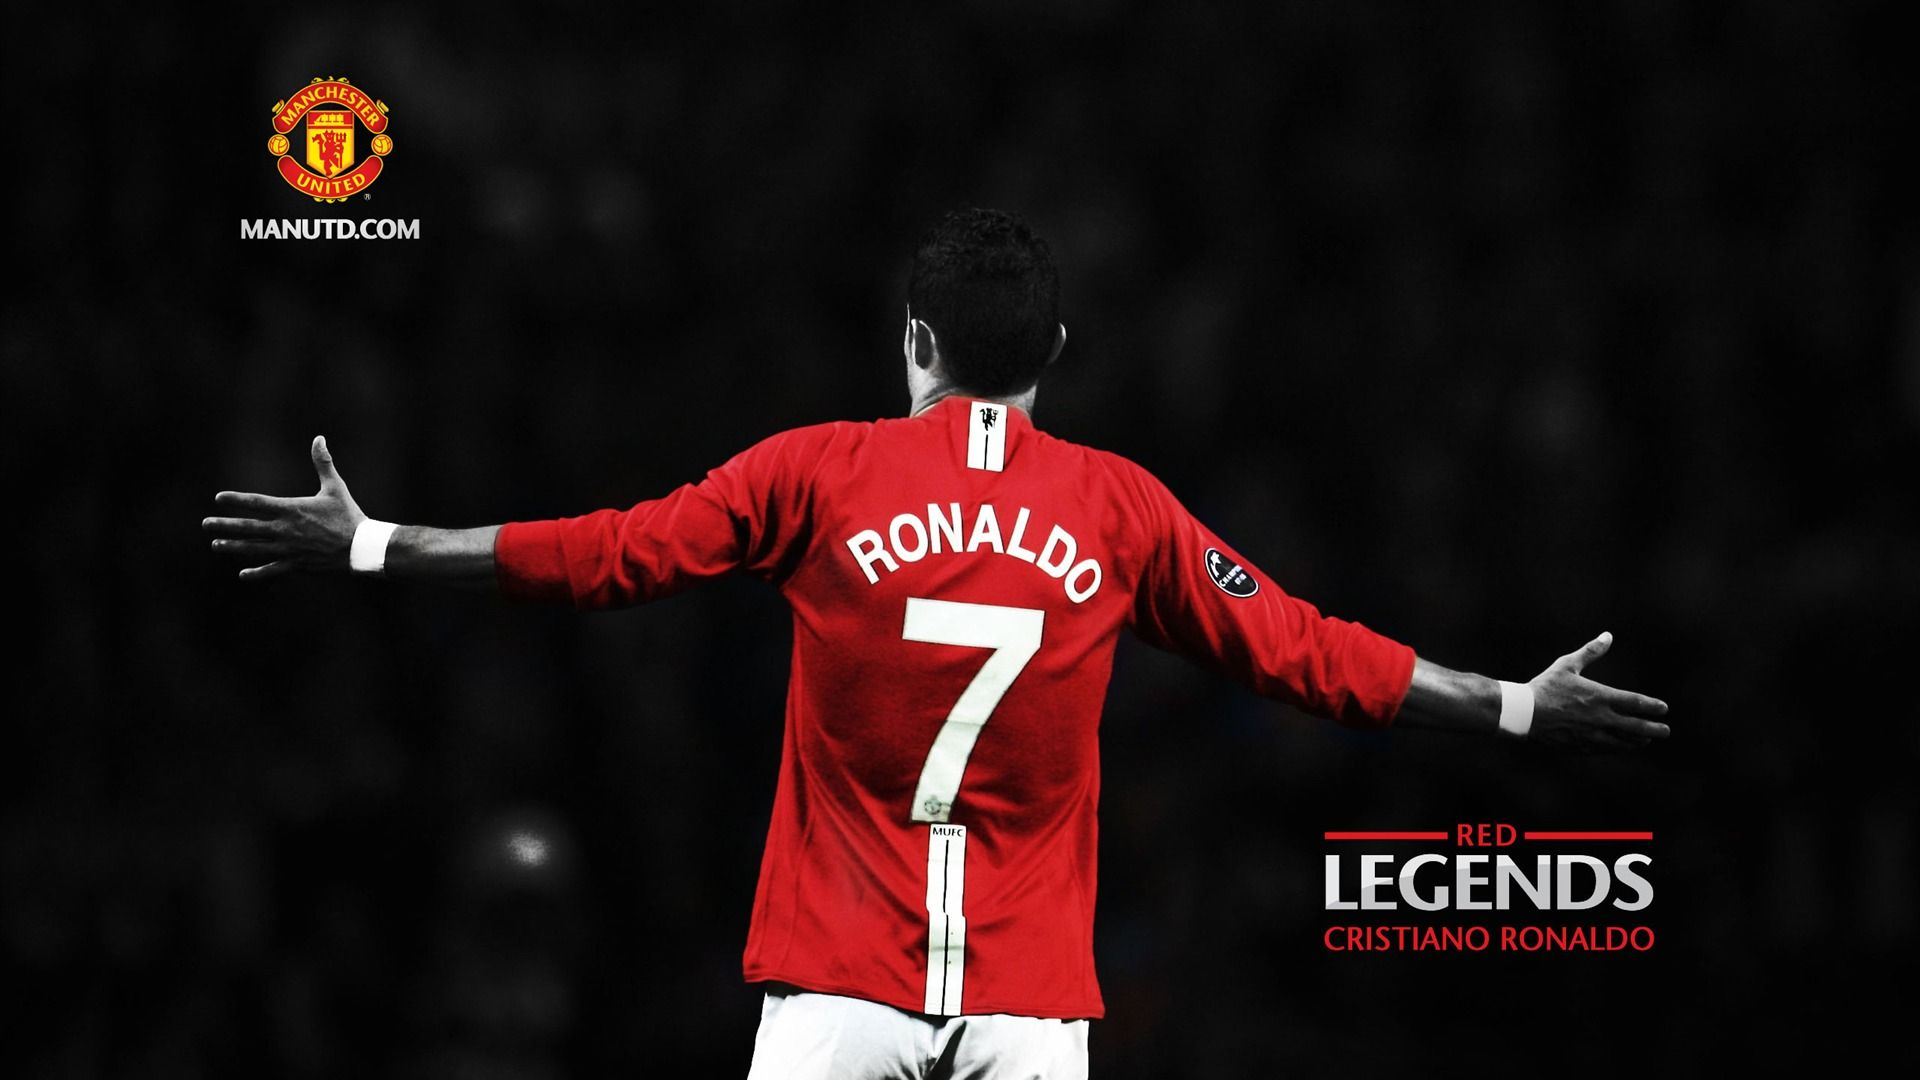 Get Nice Manchester United Wallpapers Hd Wallpaper Cristiano Ronaldo Manchester United Hd Wallpaper